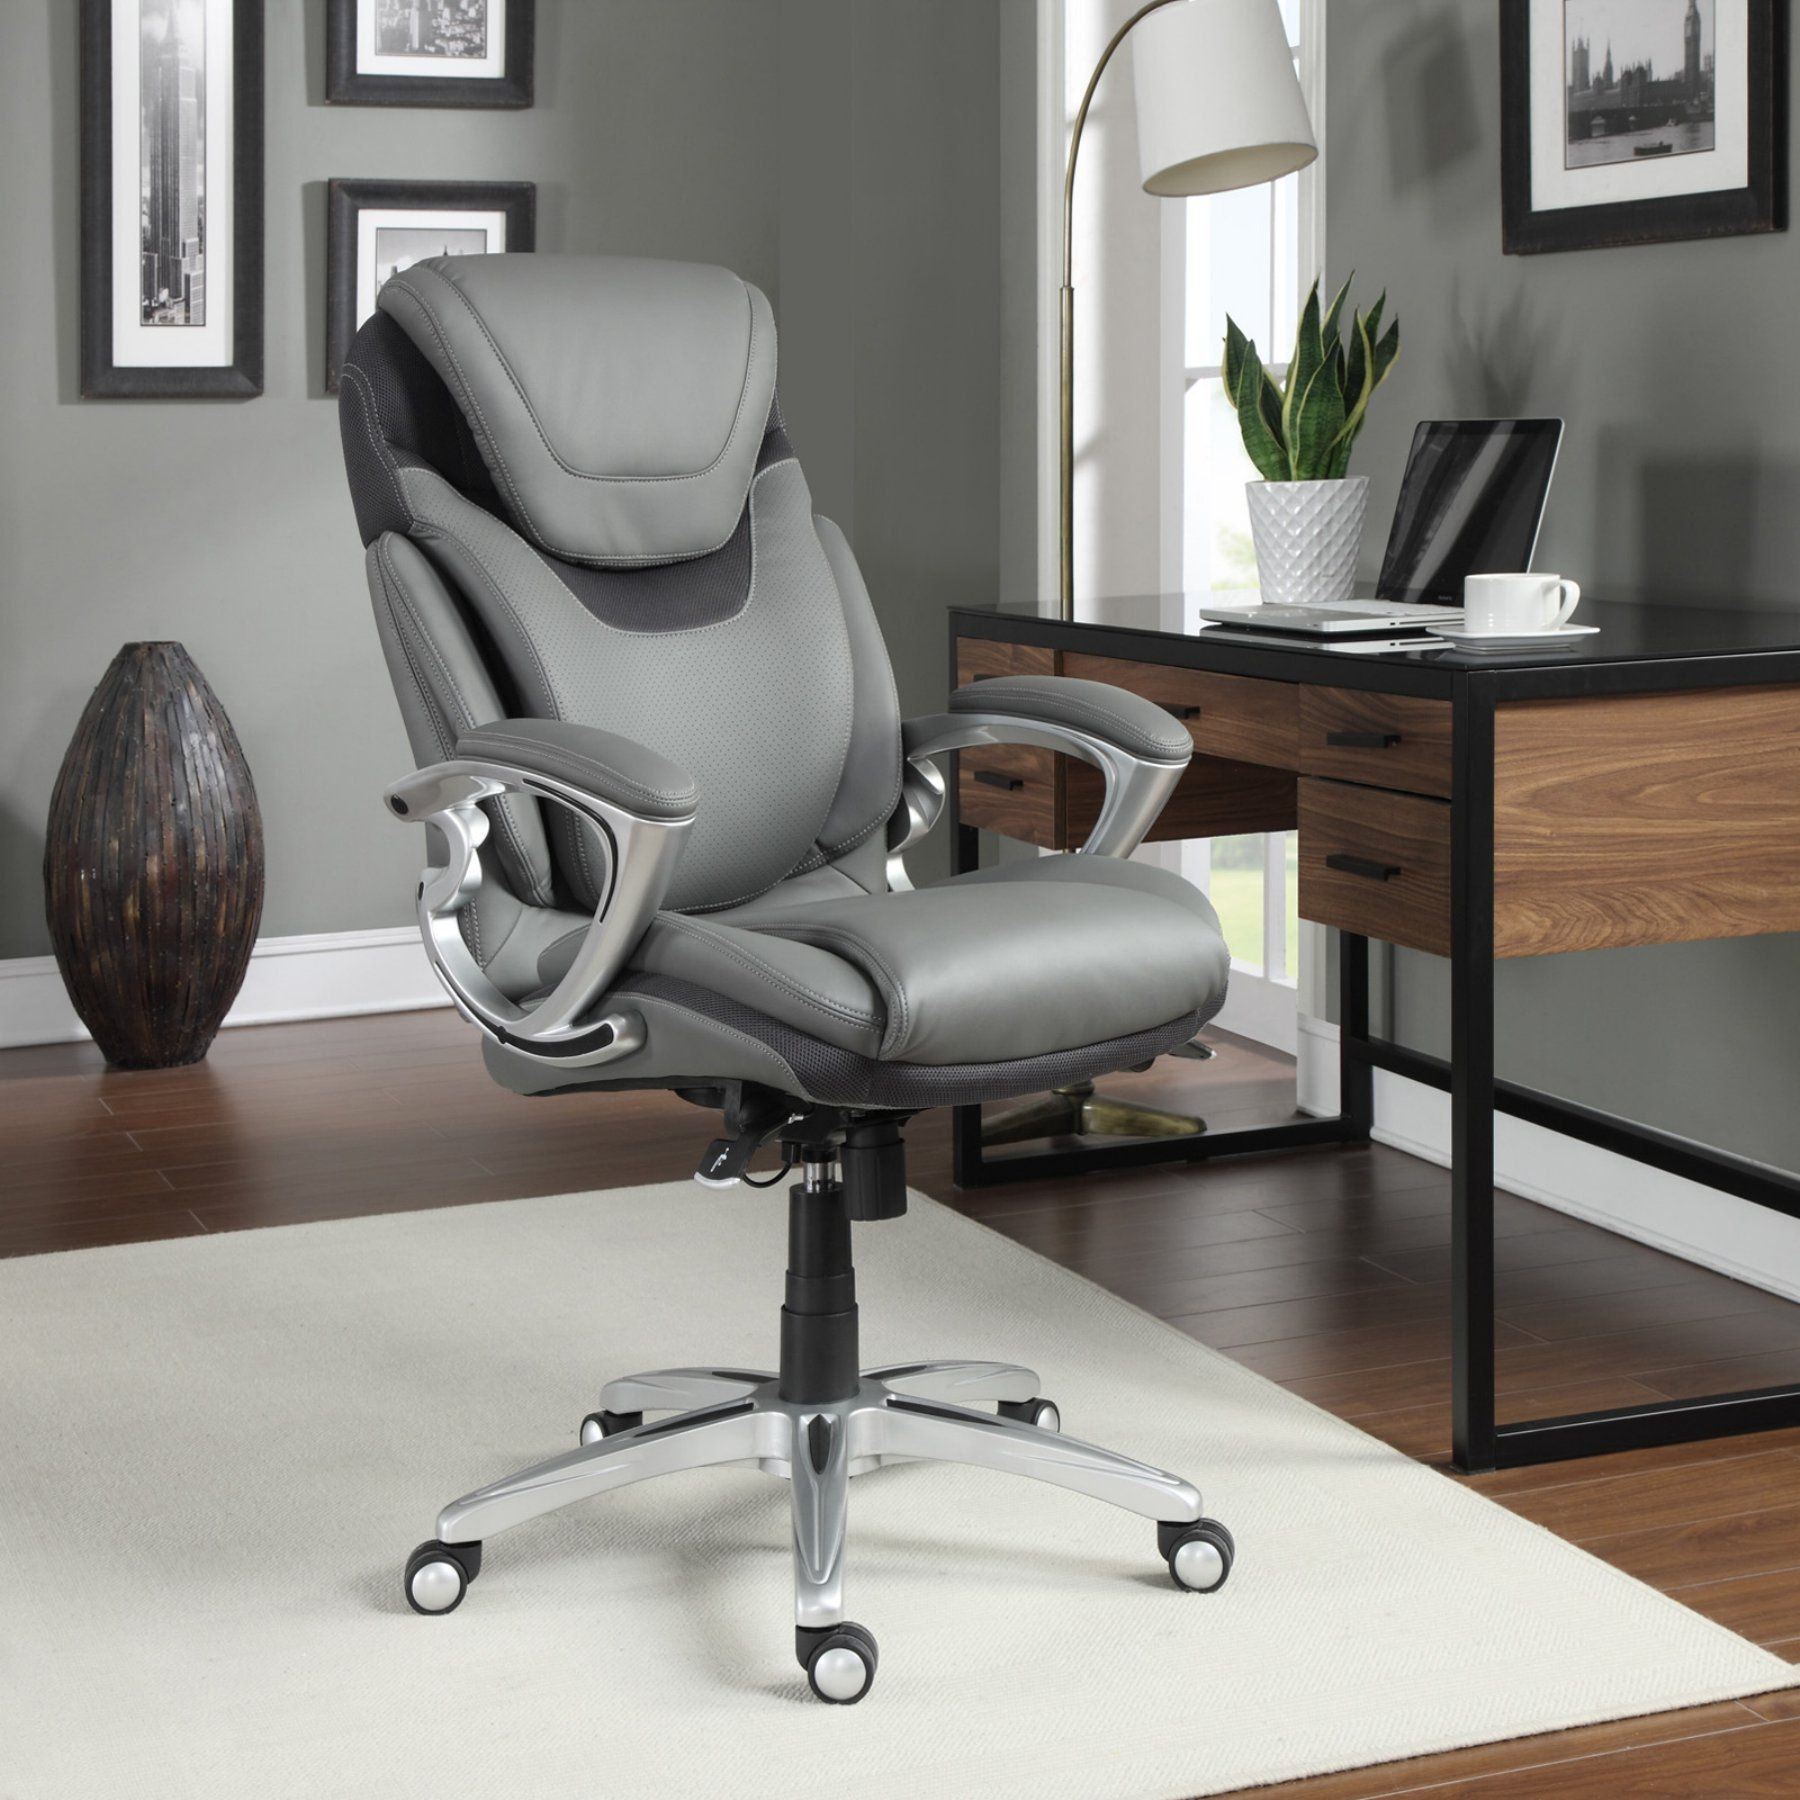 Serta Bonded Leather Executive Chair Black Modern Dining Chairs Air Health Wellness Eco Friendly Office Comfortable Cream Chr200129